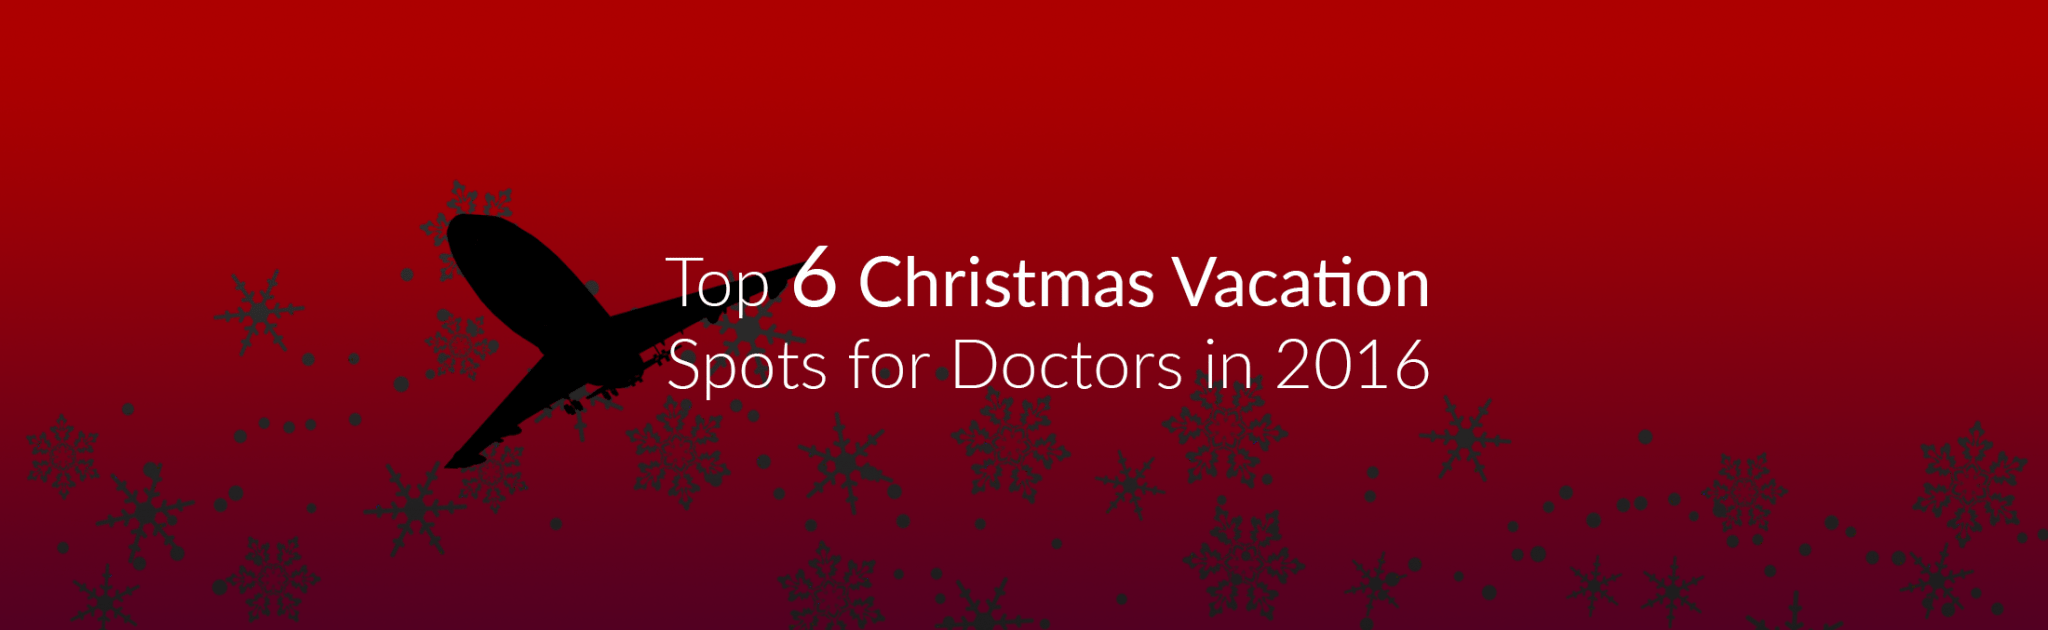 Top Christmas Vacation spots Philippine Doctors 2016